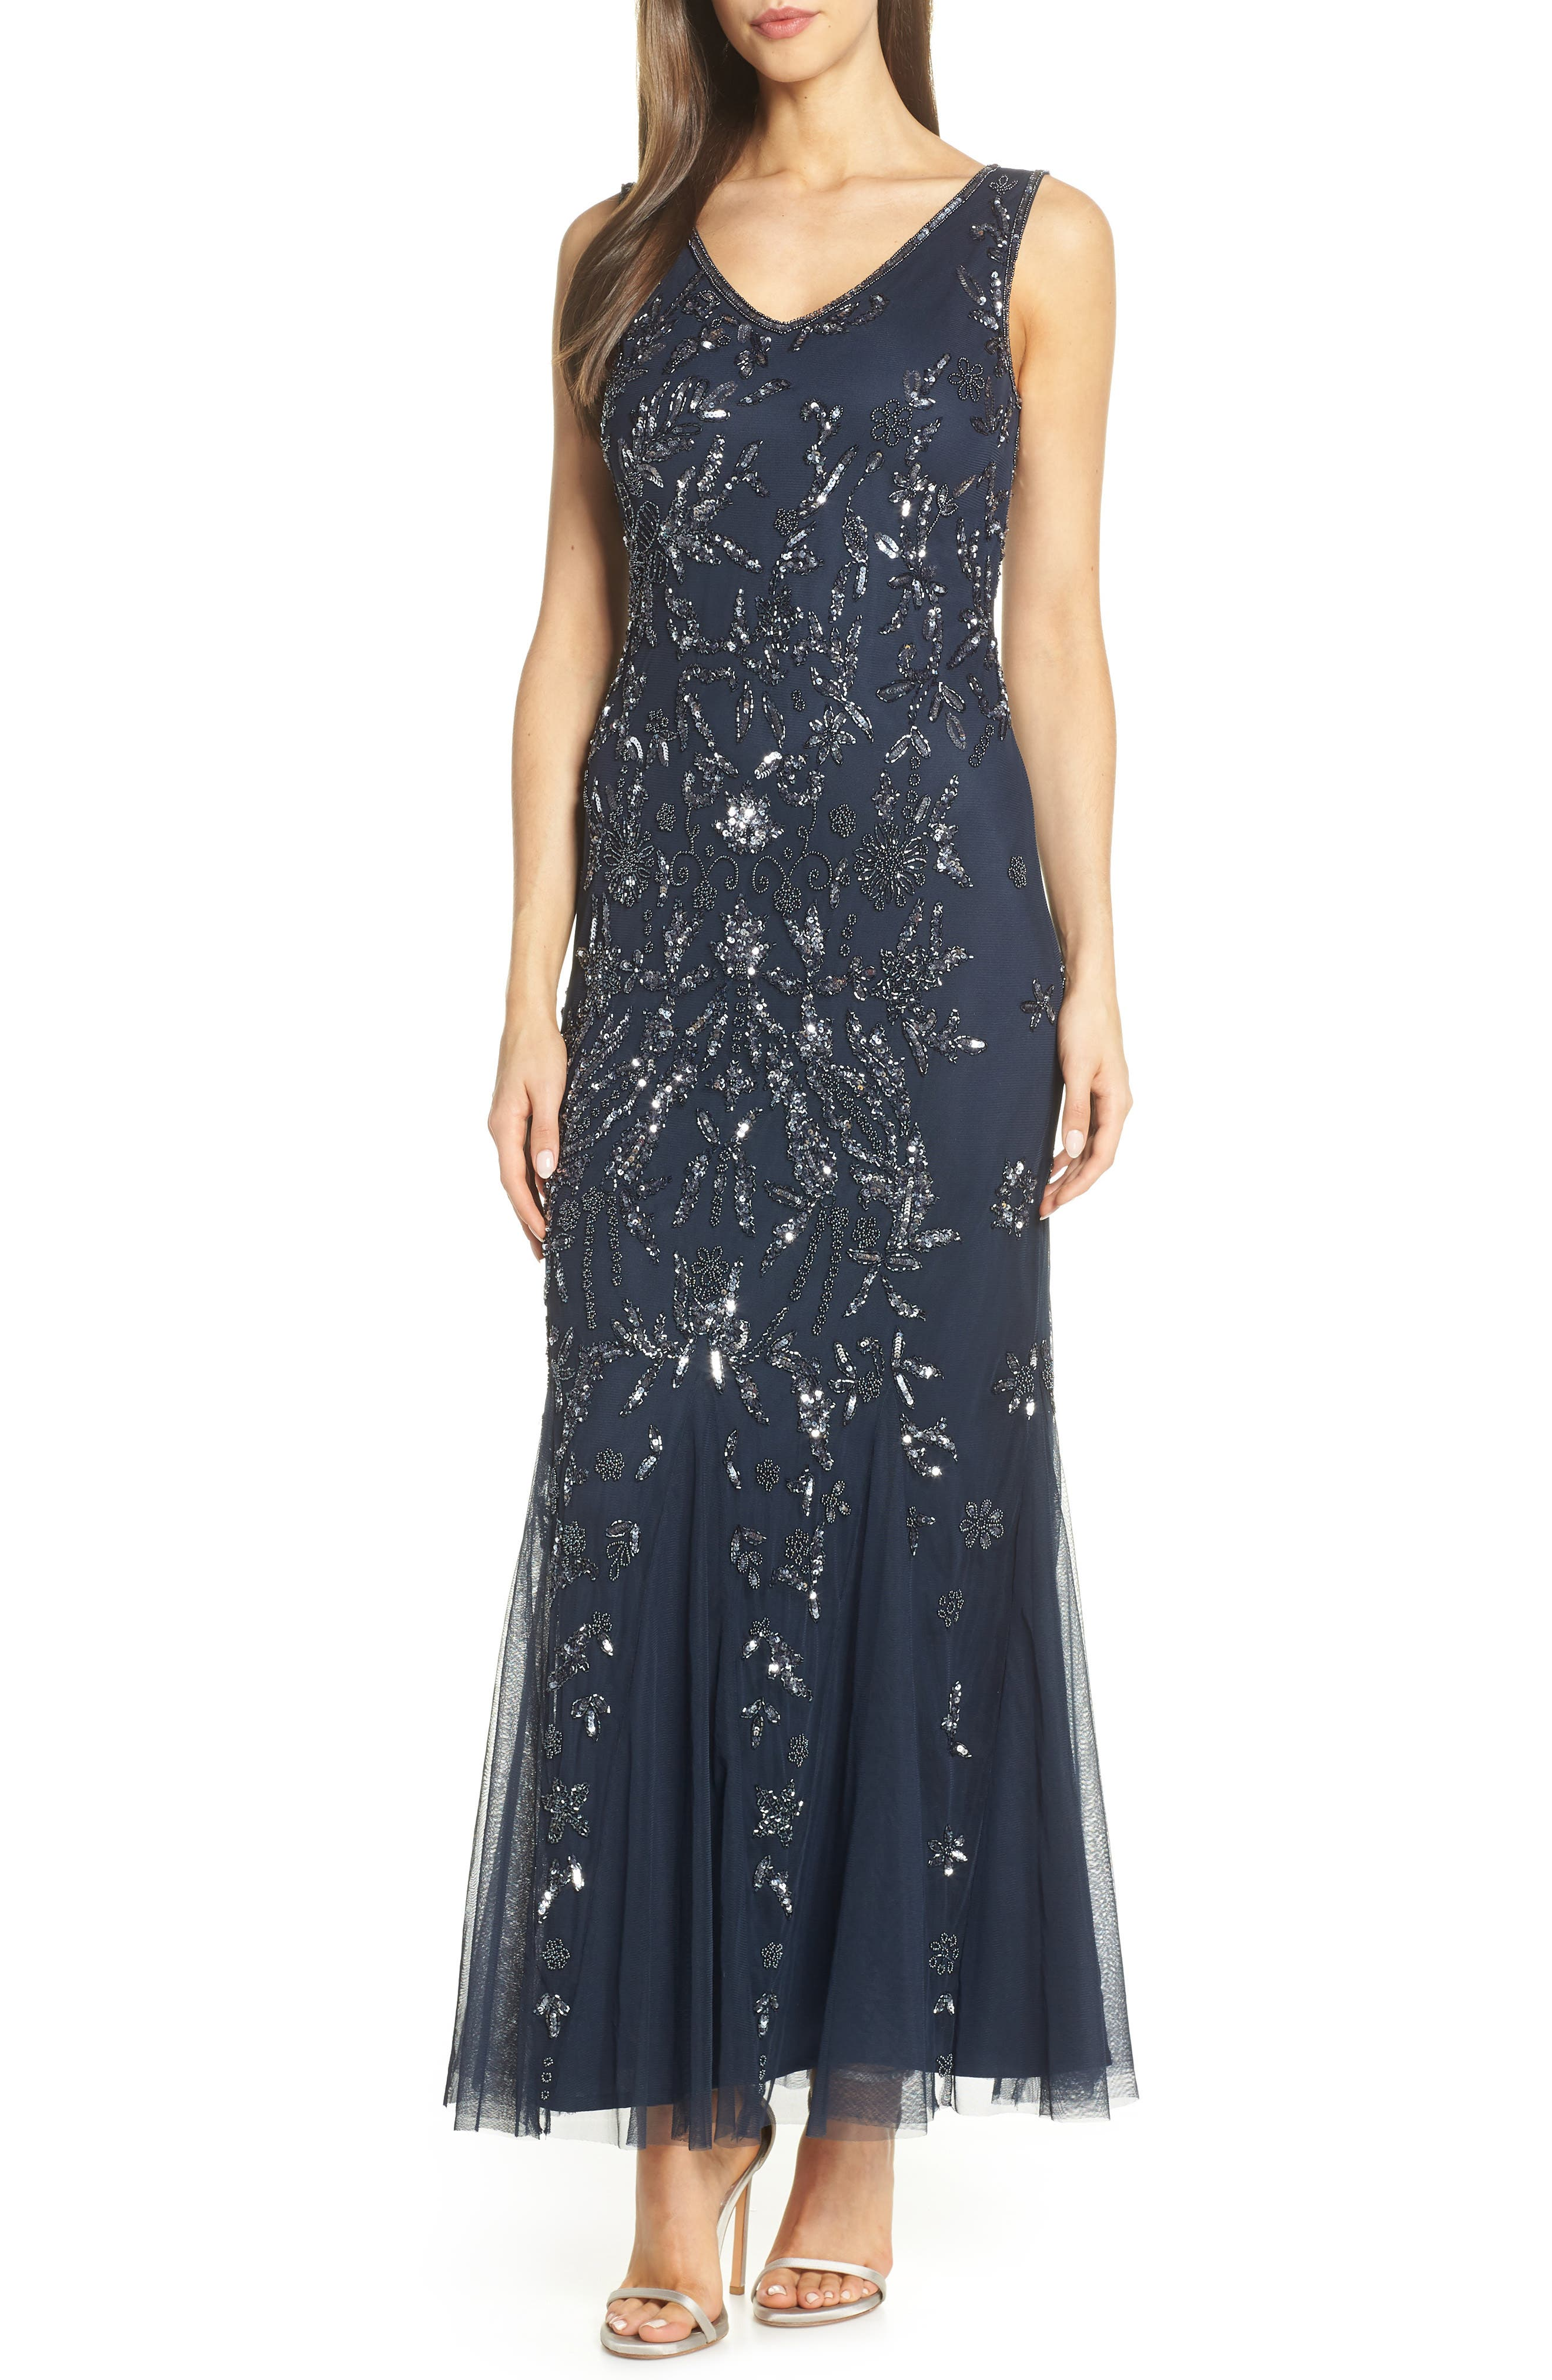 Pisarro Nights Embellished Mesh Gown, 8 (similar to 1) - Blue